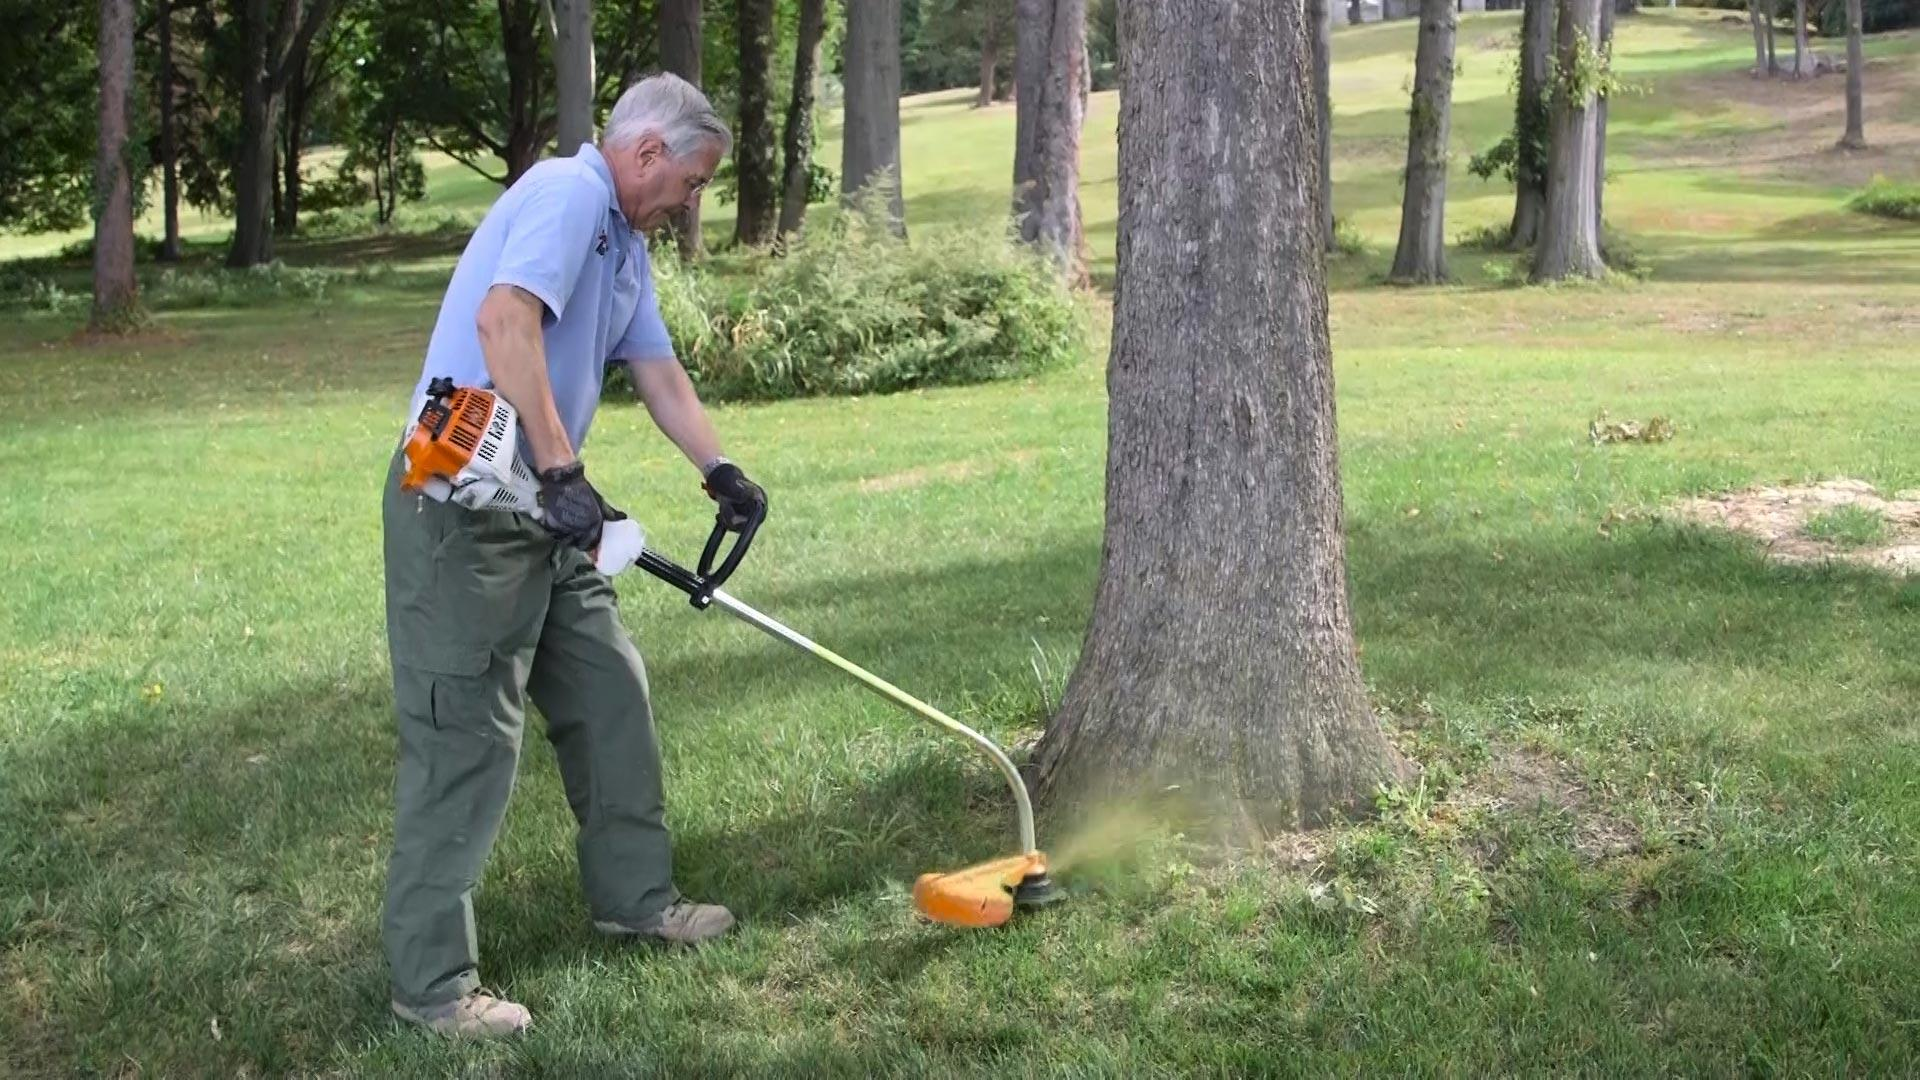 Best String Trimmer Buying Guide - Consumer Reports